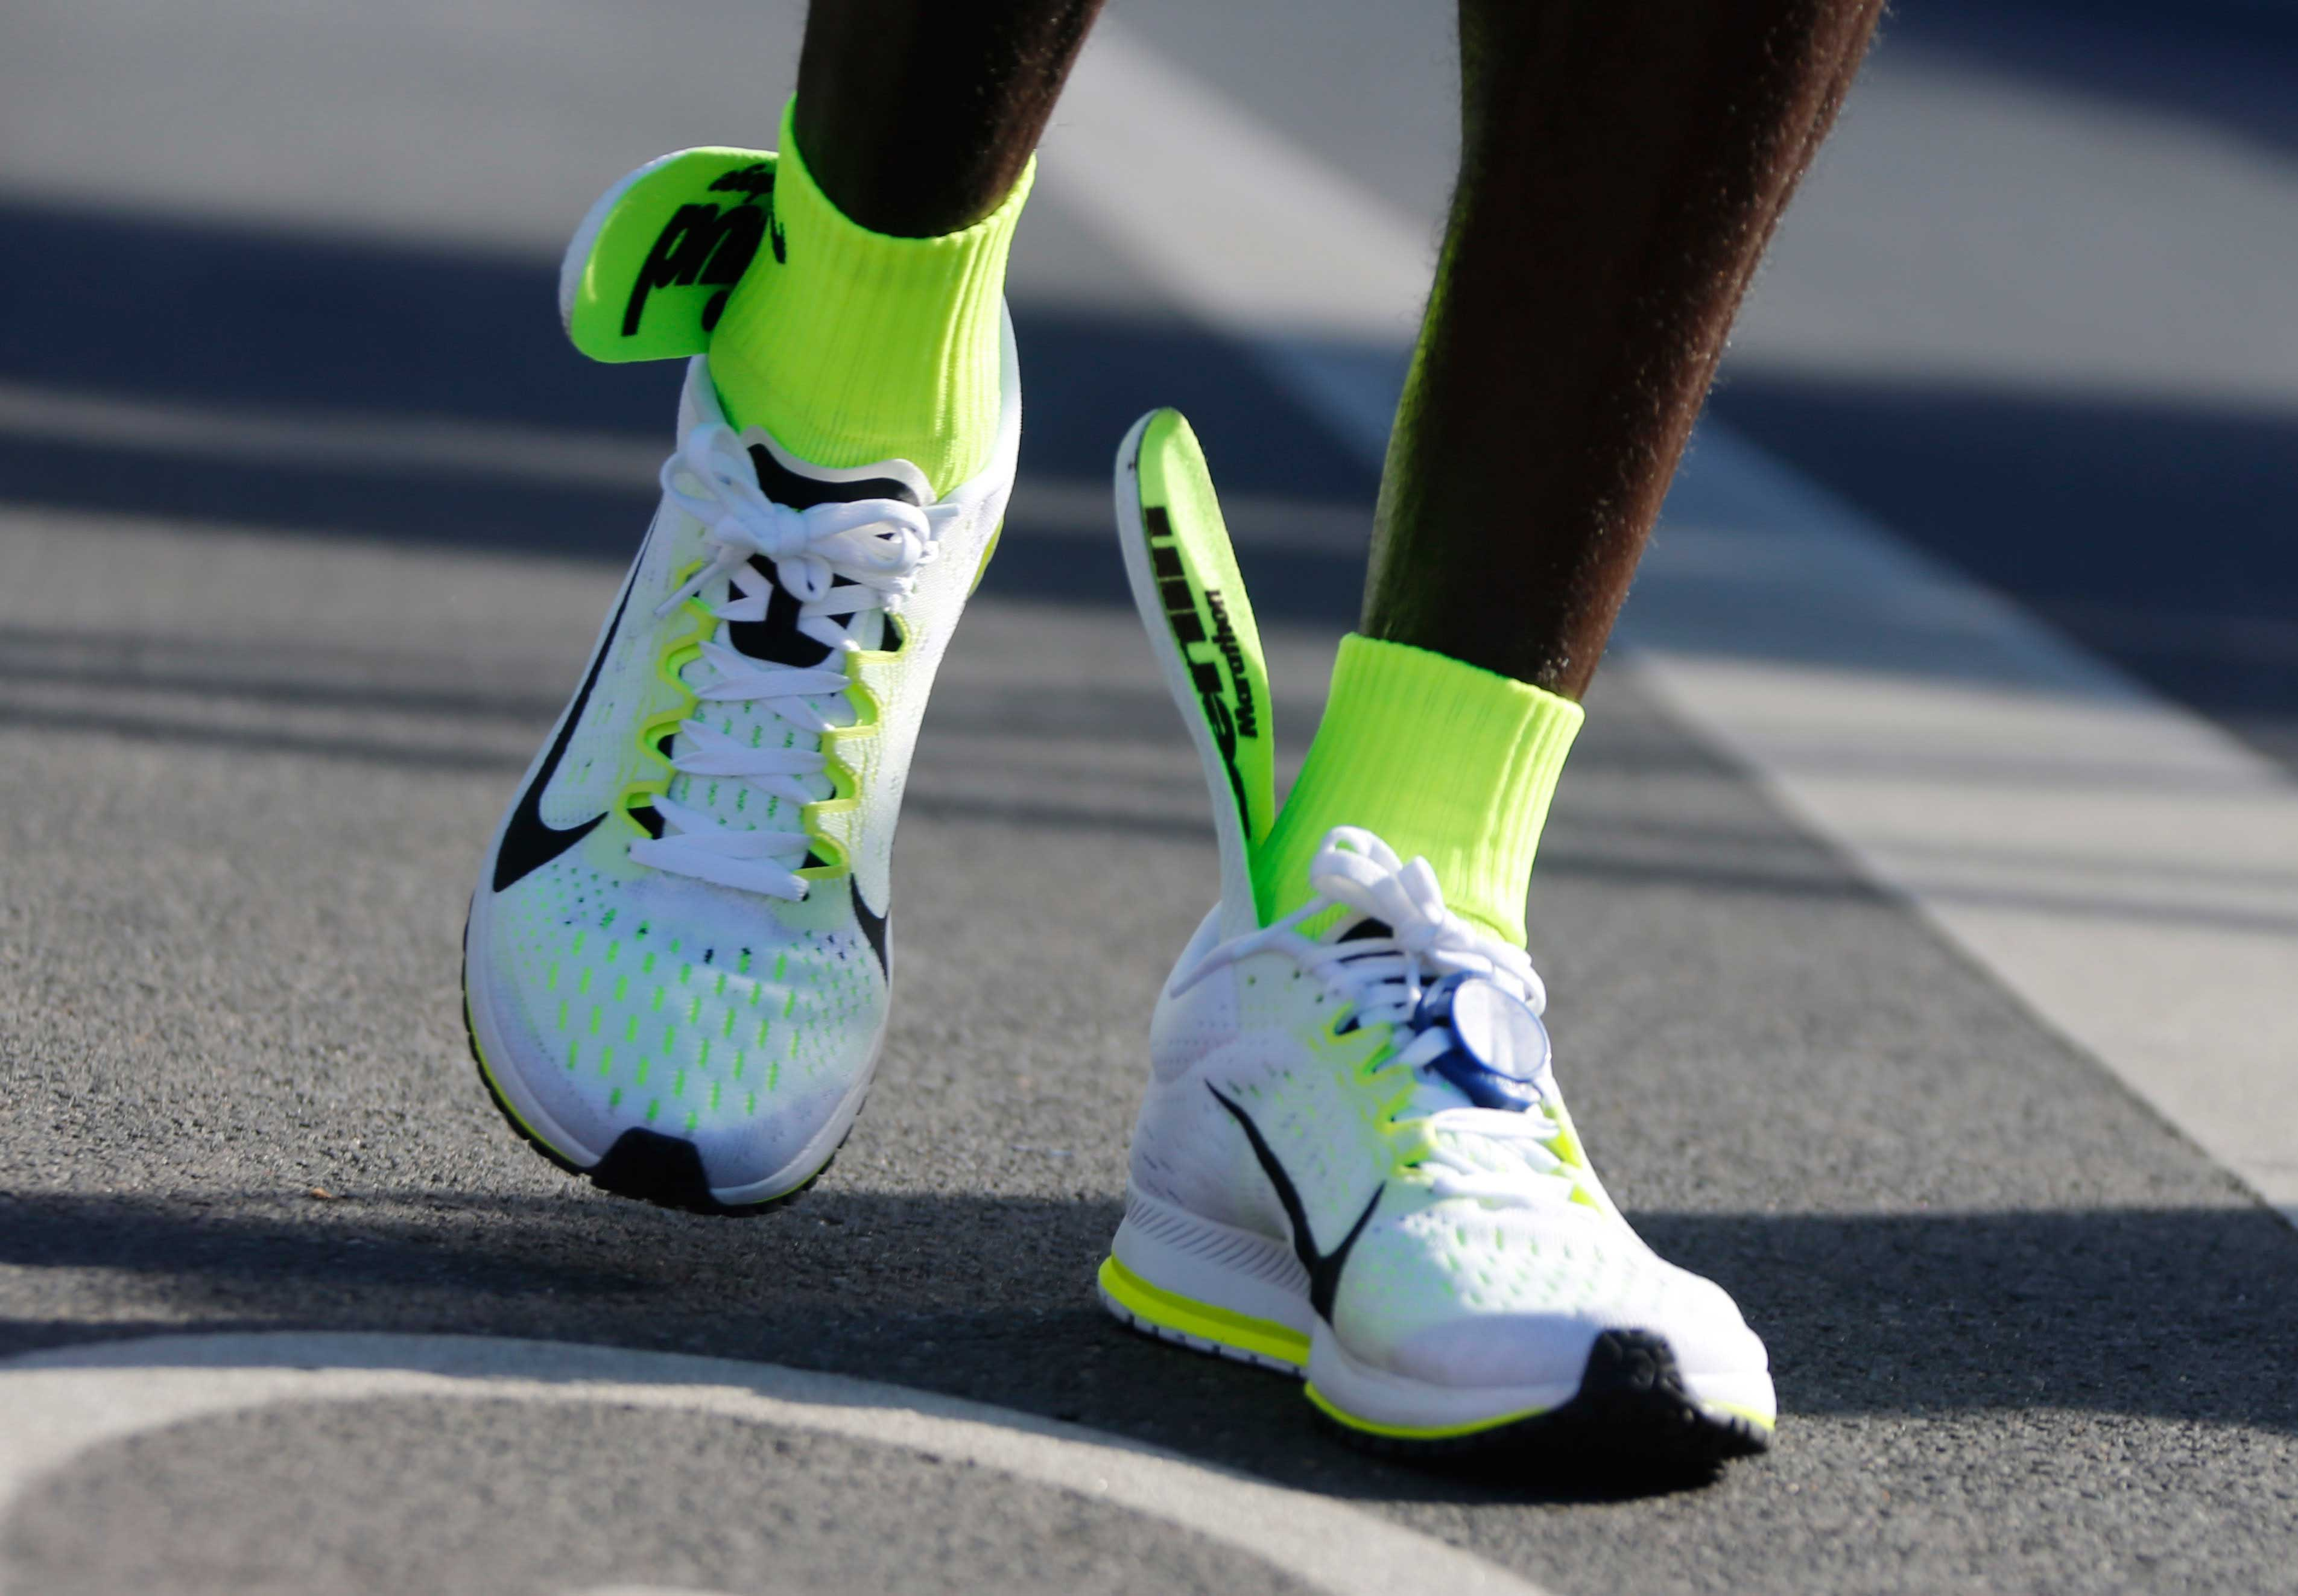 The insoles of Kenya's Kipchoge's running shoes are seen slipping up to his ankles after he crosses finish line to win the men's 42nd Berlin marathon